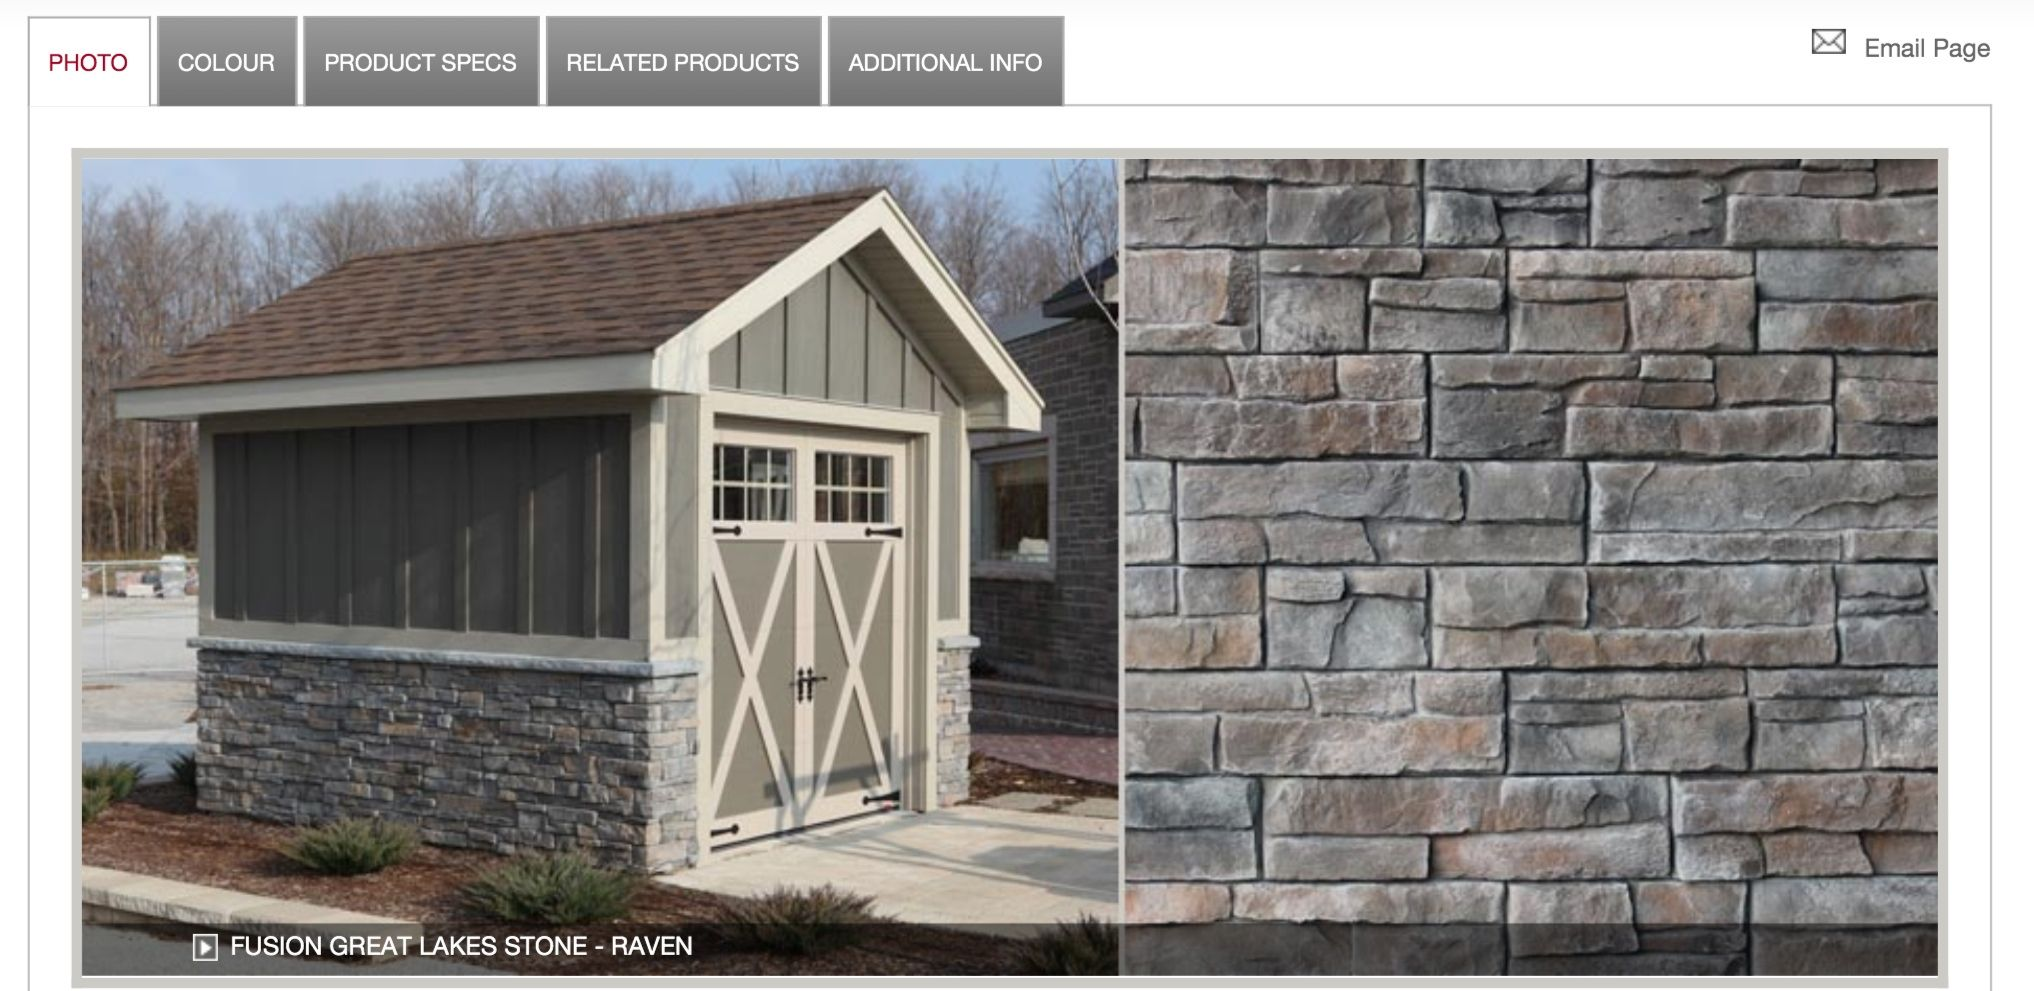 Diy Stone Exterior With Fusion Stone Avail At Home Depot